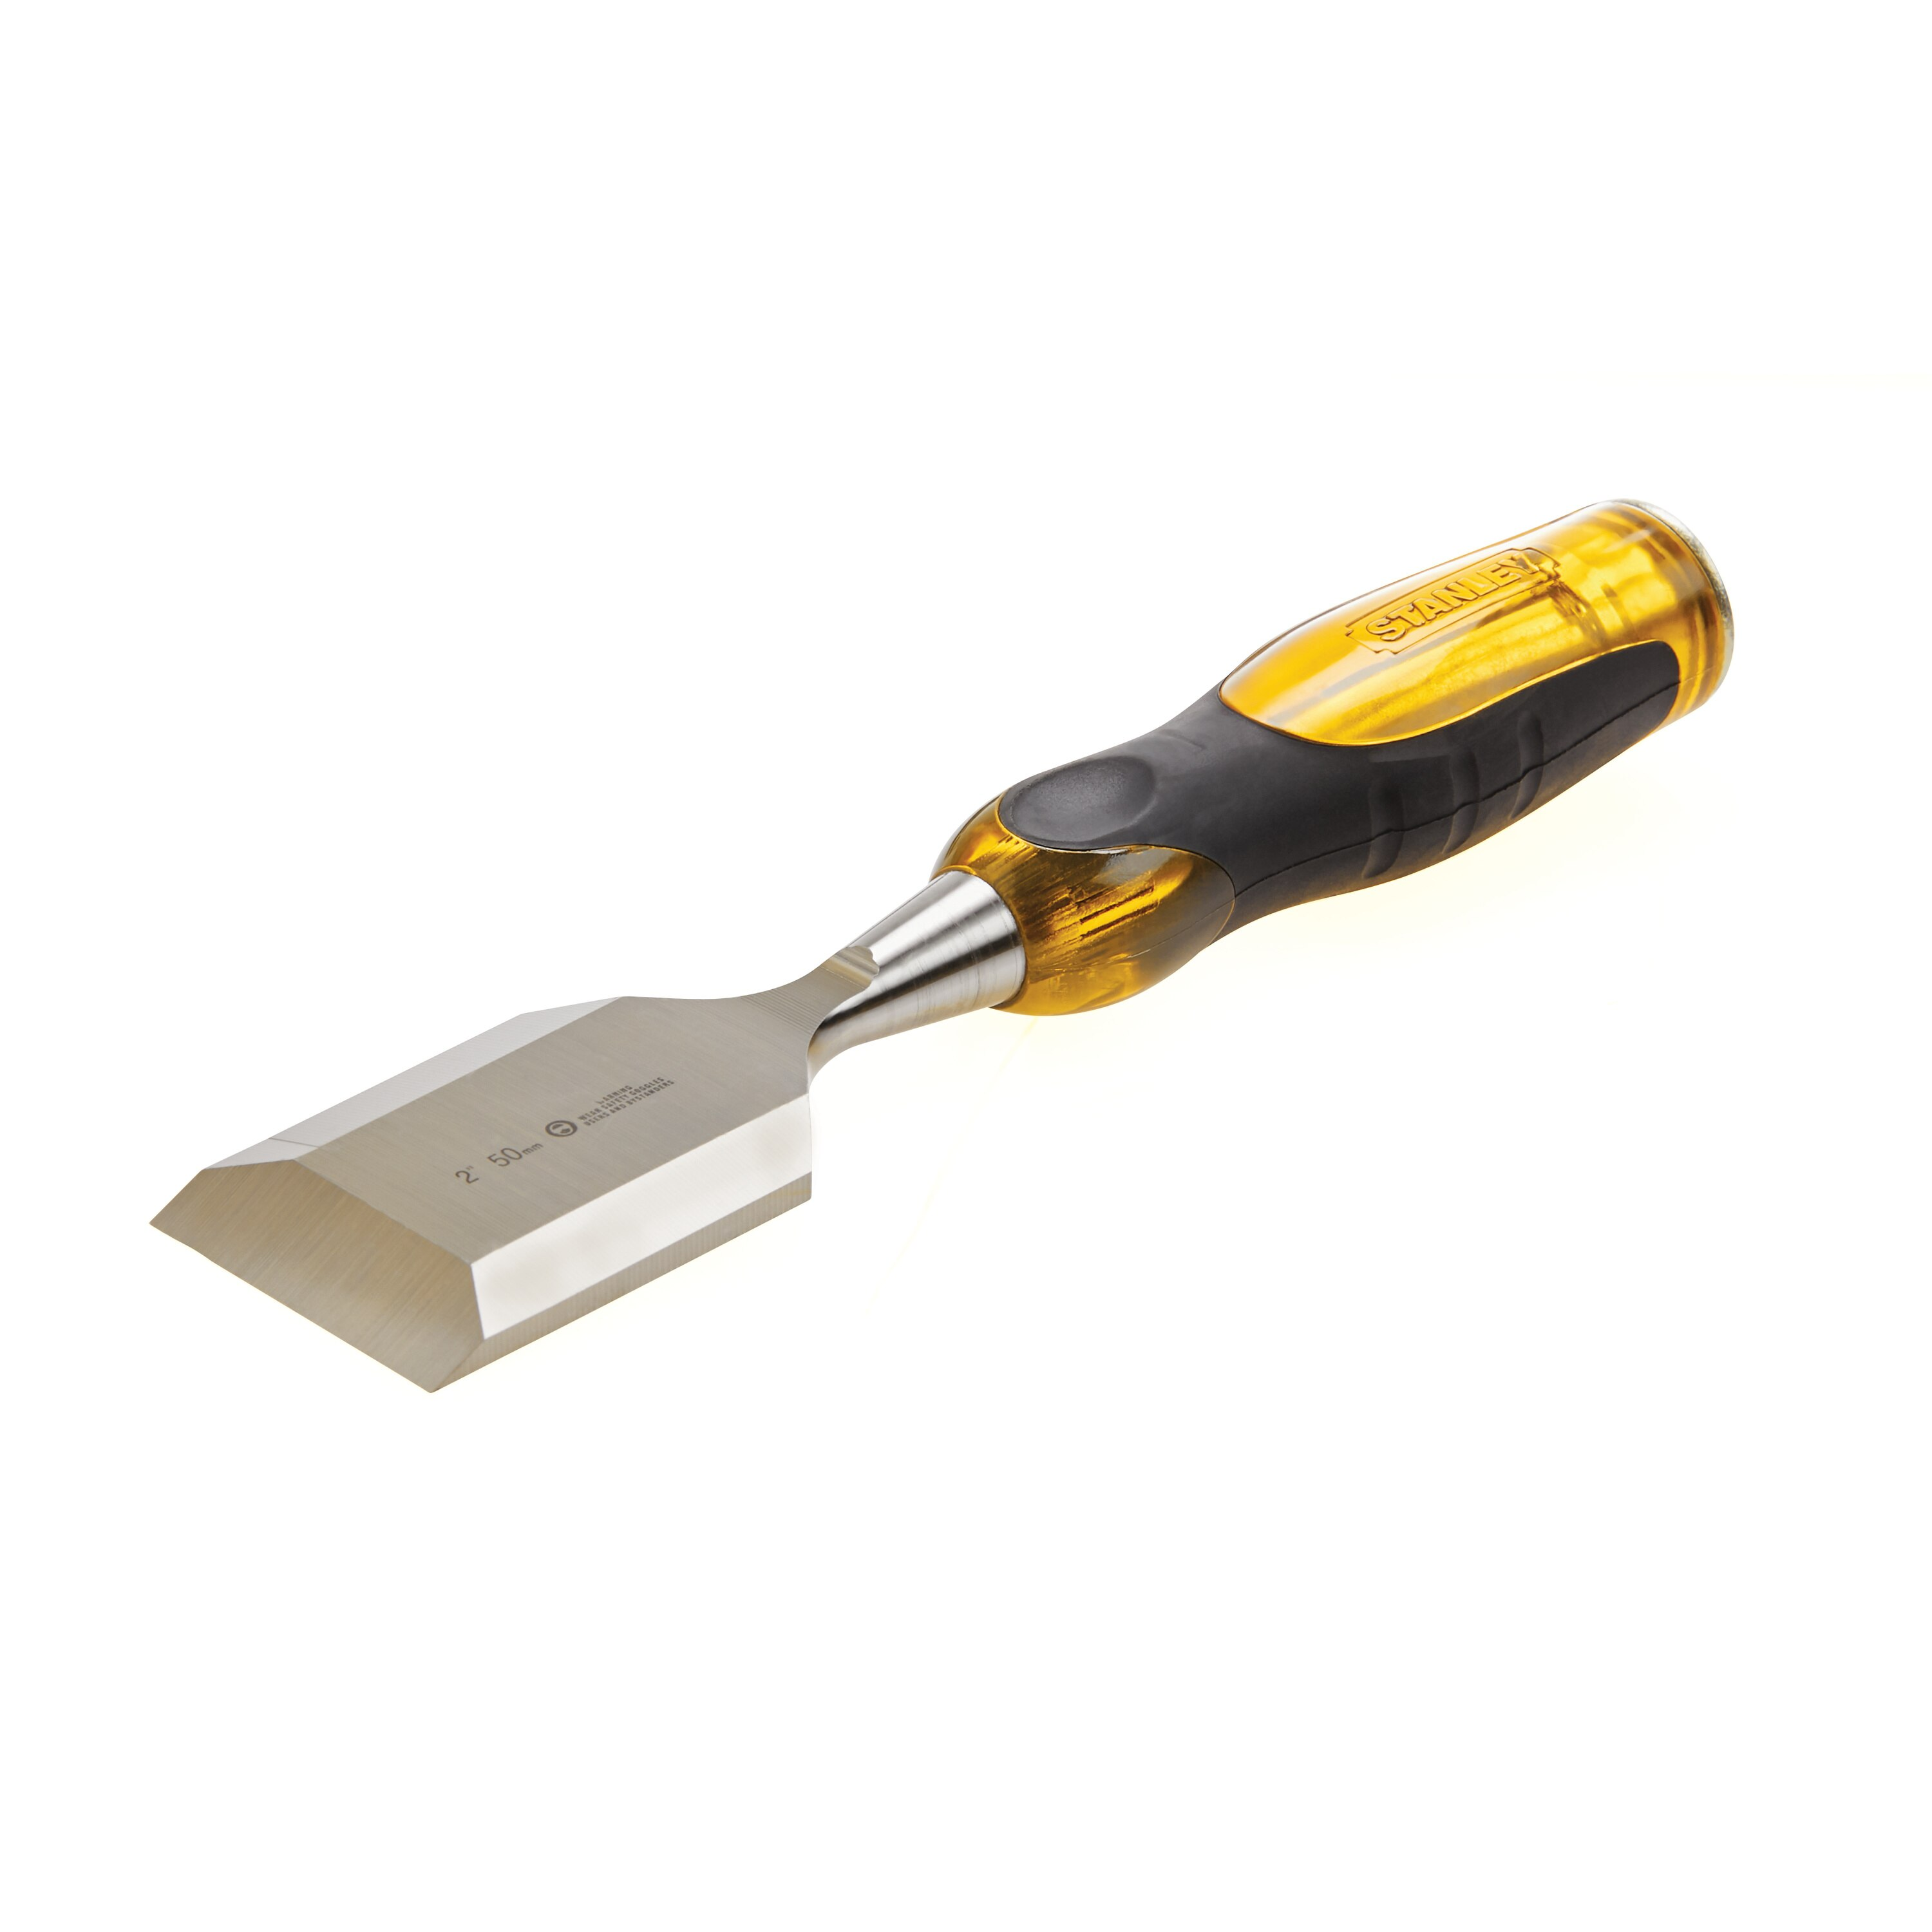 Stanley Tools - 2 in FATMAX ThruTang Wood Chisel - 16-981